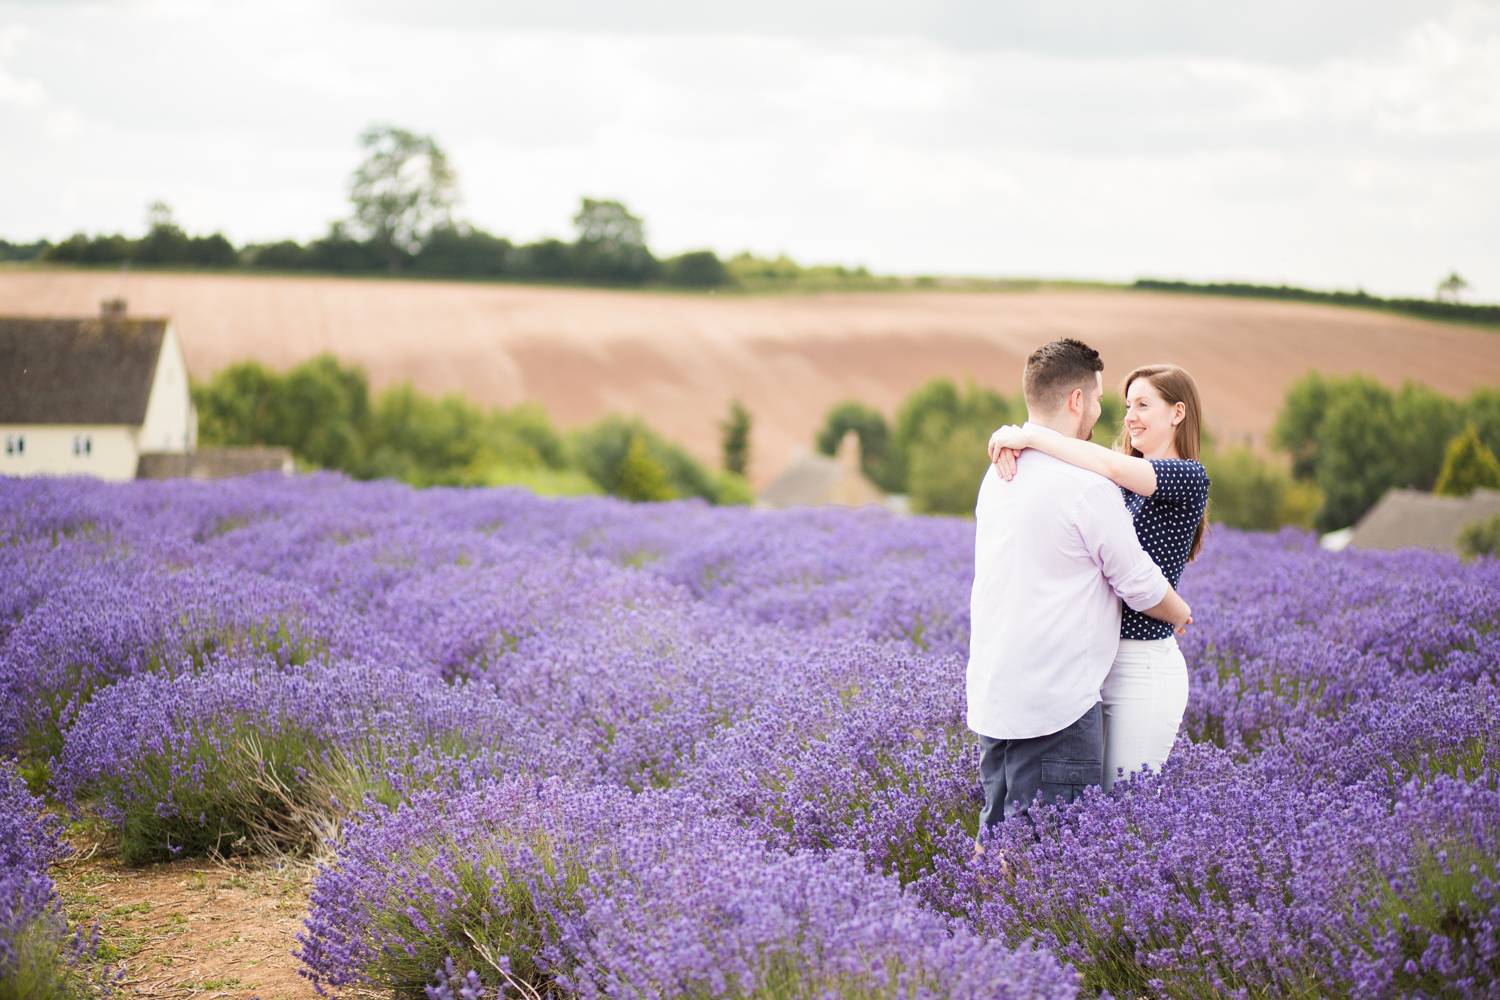 Sophie-Evans-Photograpy-Cotswold-Lavander-Engagement-shoot-Cotswold-wedding-photographer-36.jpg